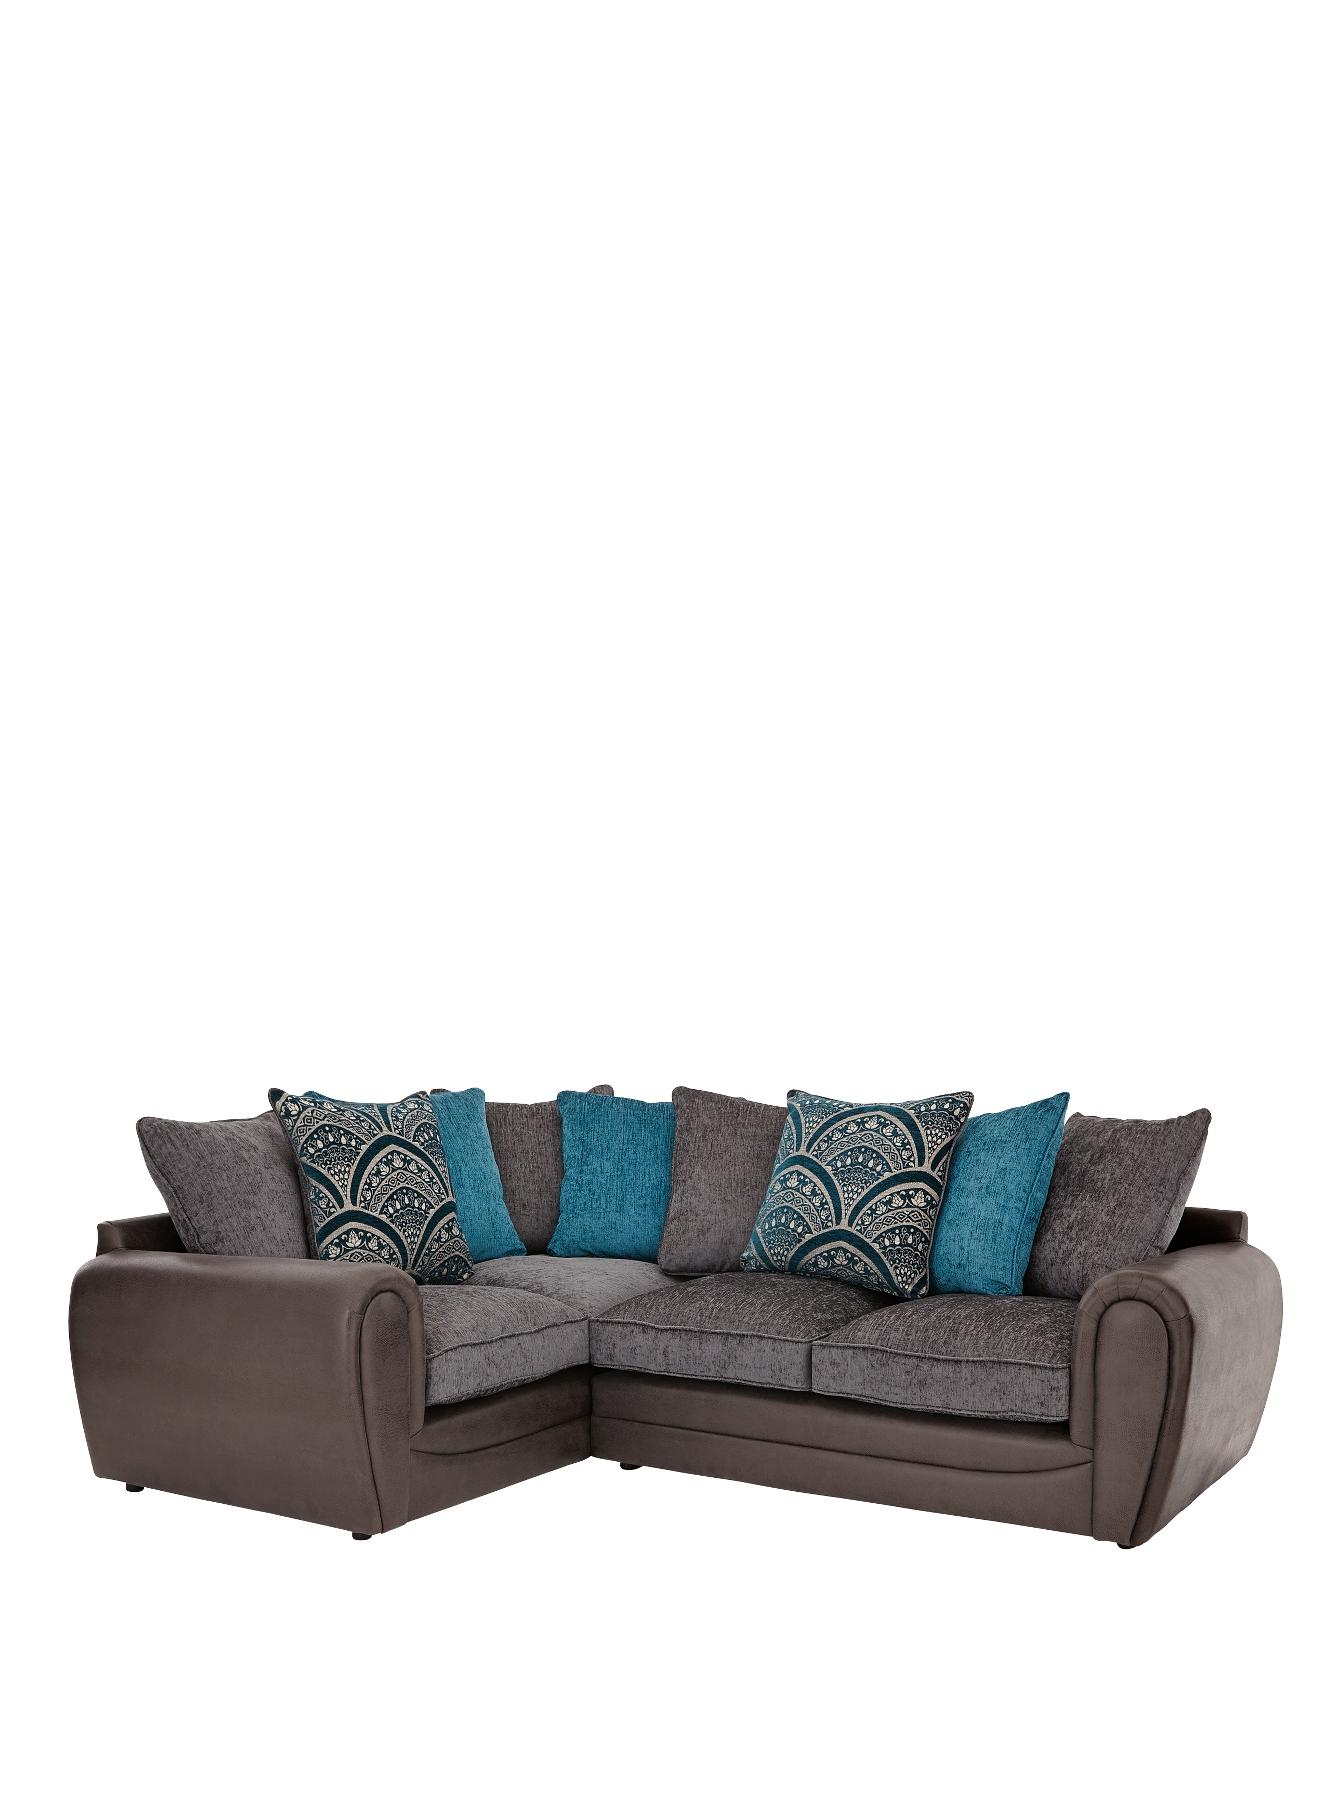 Gatsby Left-Hand Double Arm Corner Group Sofa, Grey,Black,Chocolate at Littlewoods Home Shopping